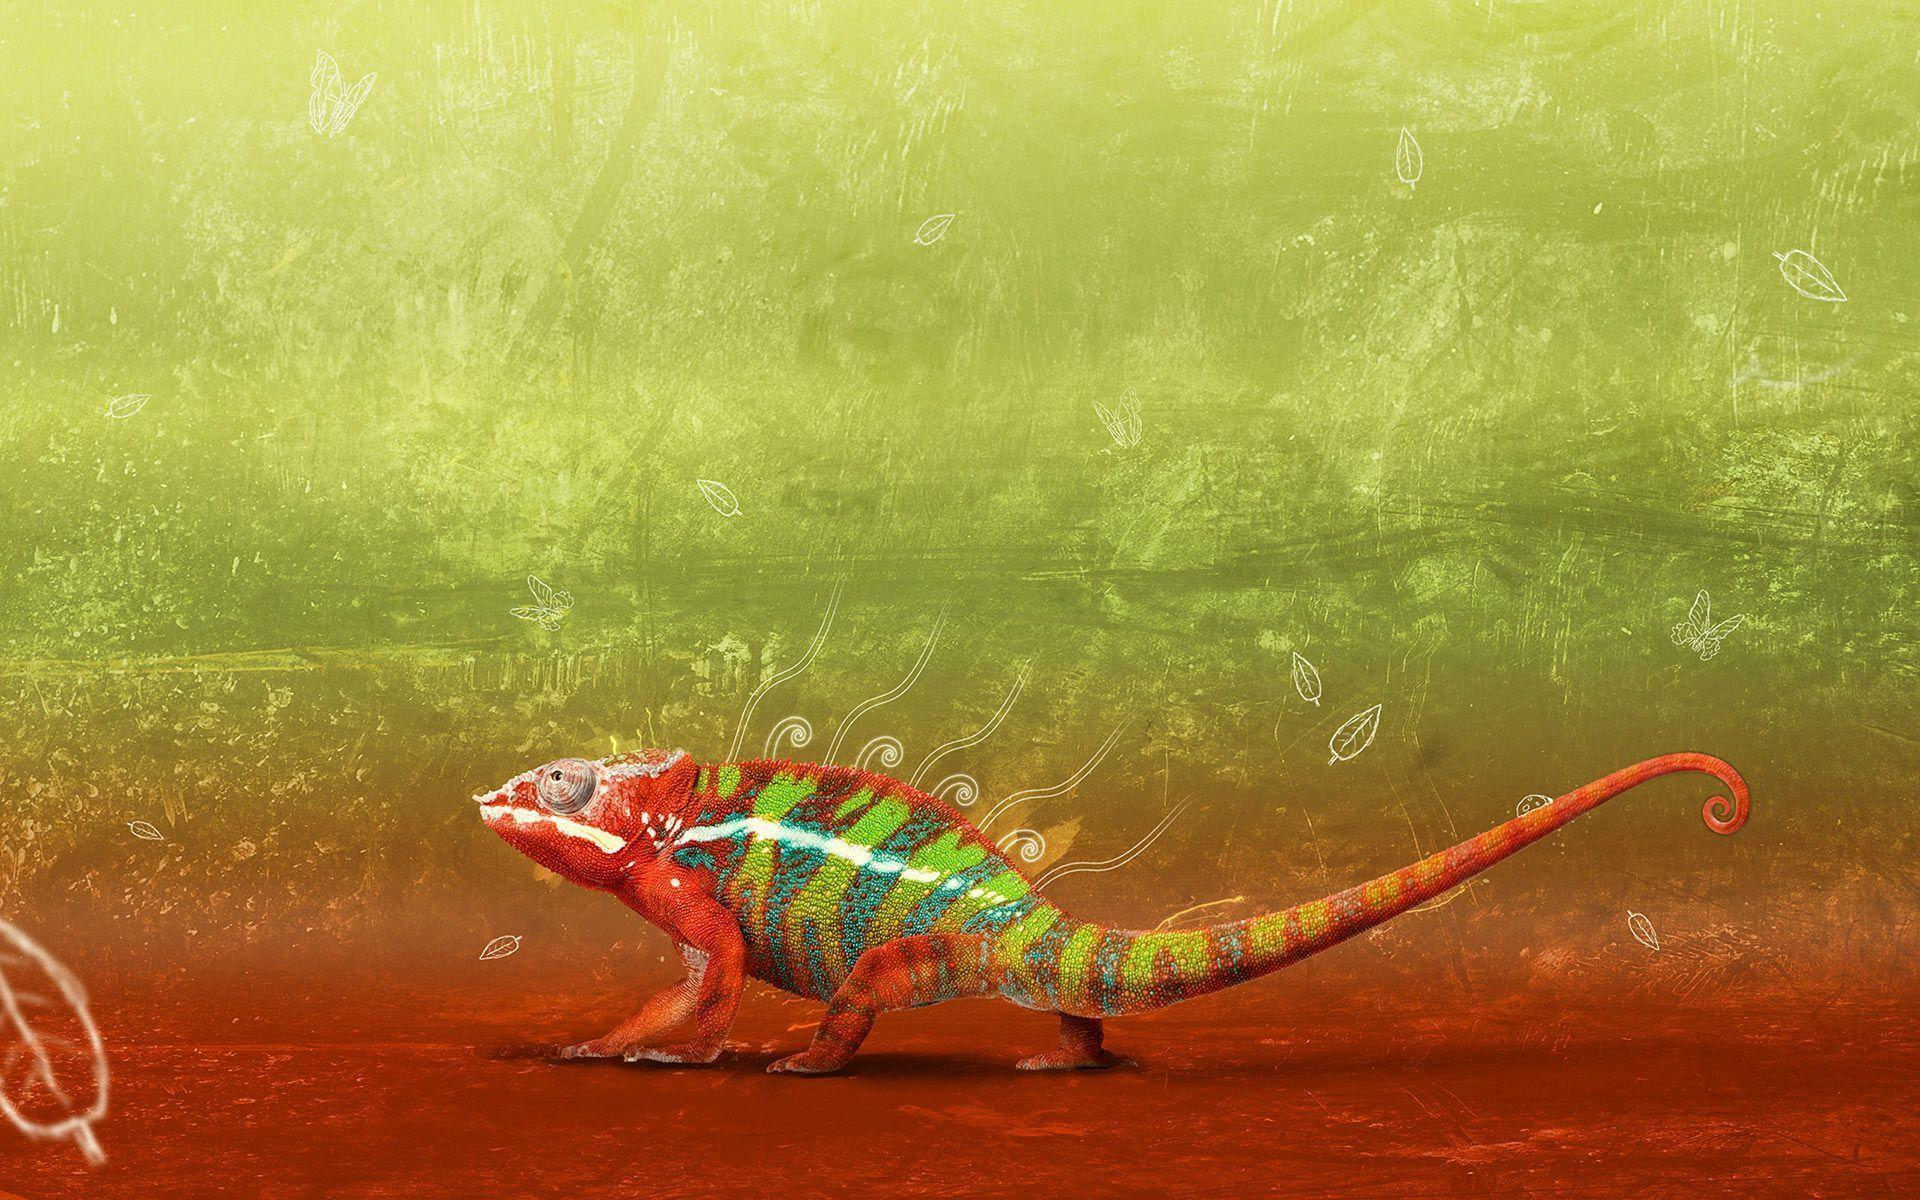 chameleon wallpaper 1920x1200 - photo #3